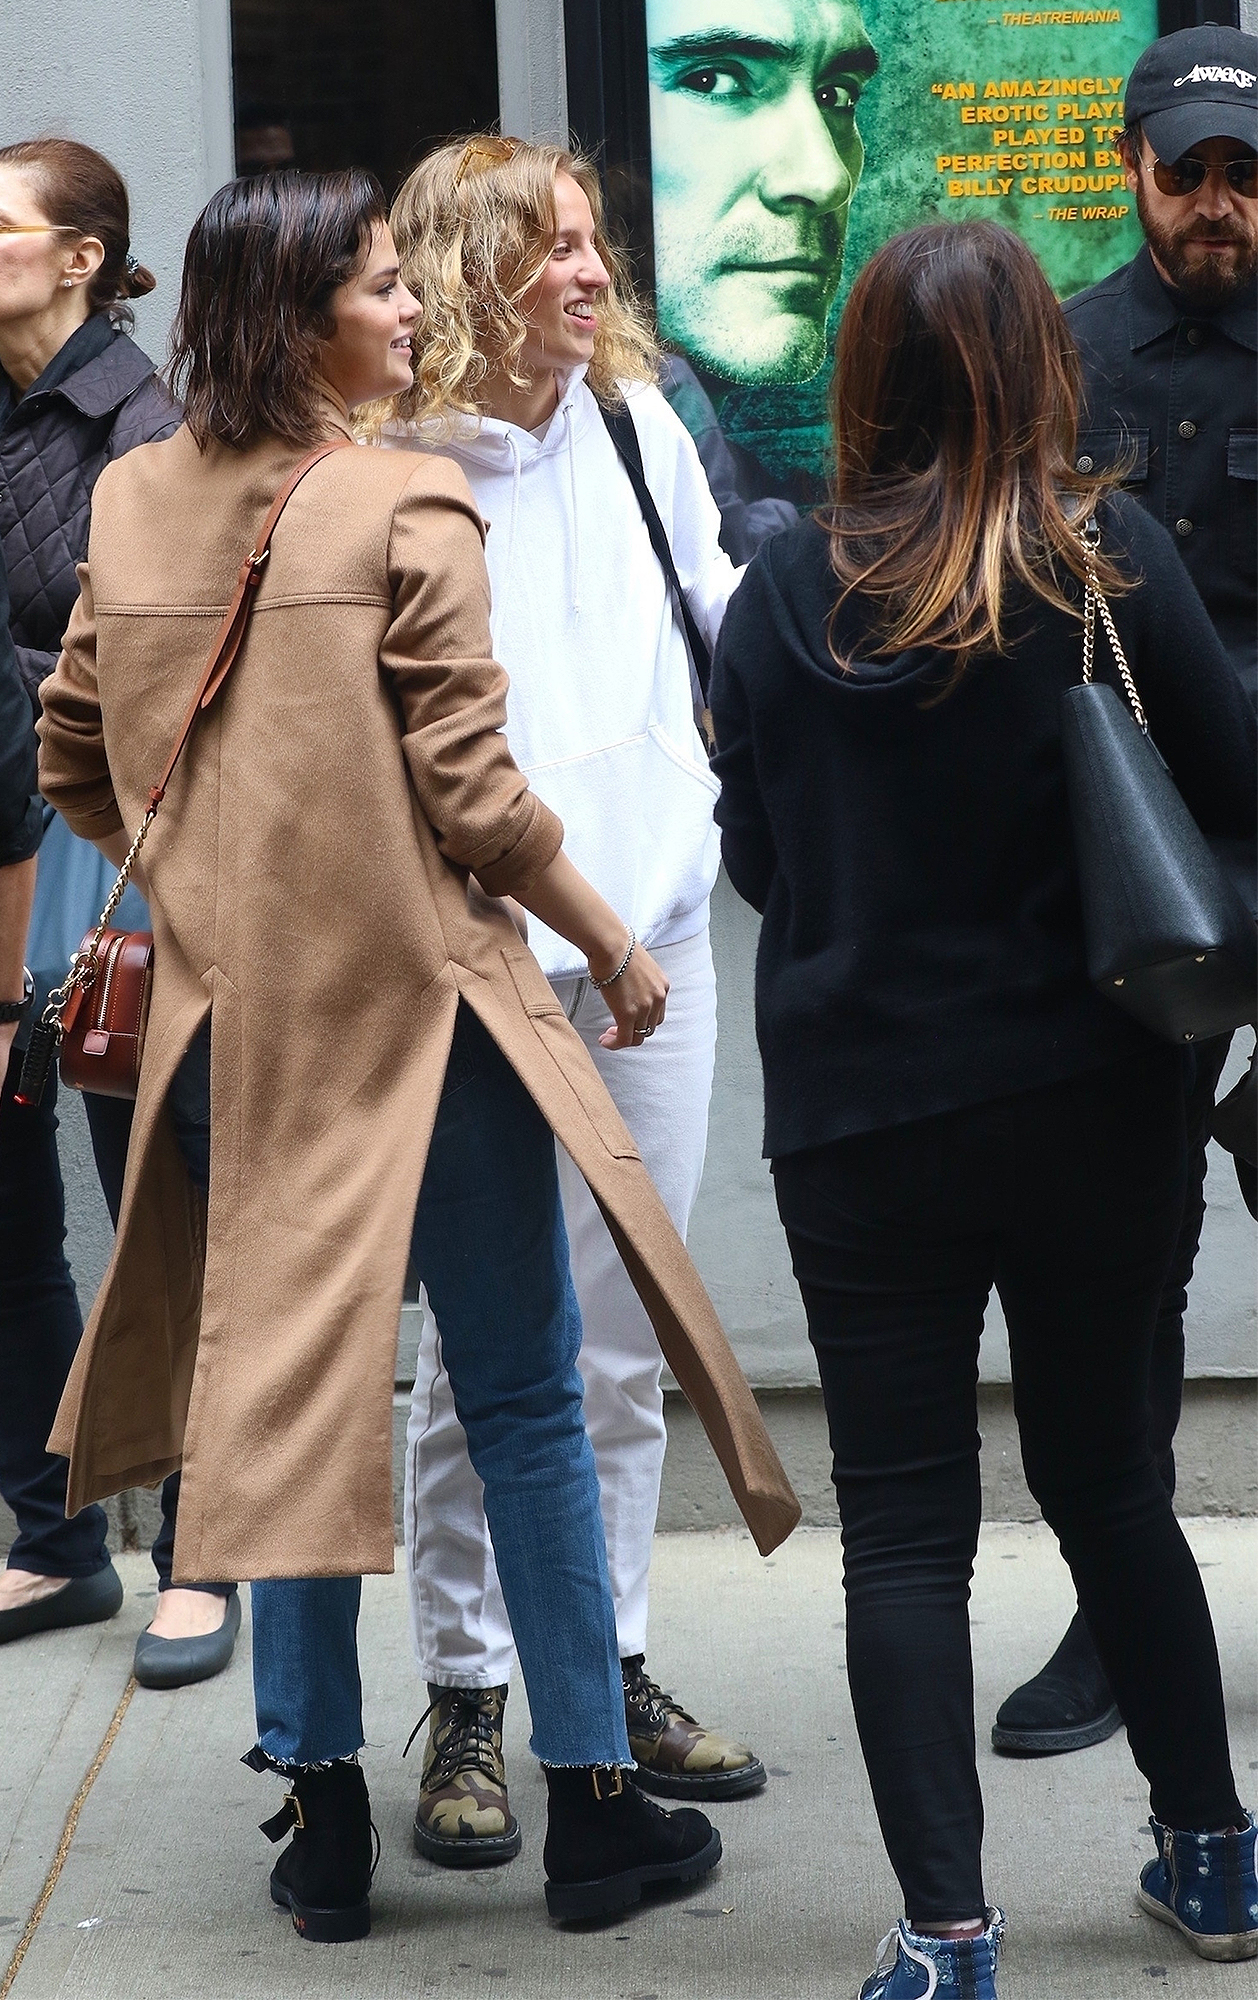 *EXCLUSIVE* Selena Gomez meets with friends to catch a play in the West Village